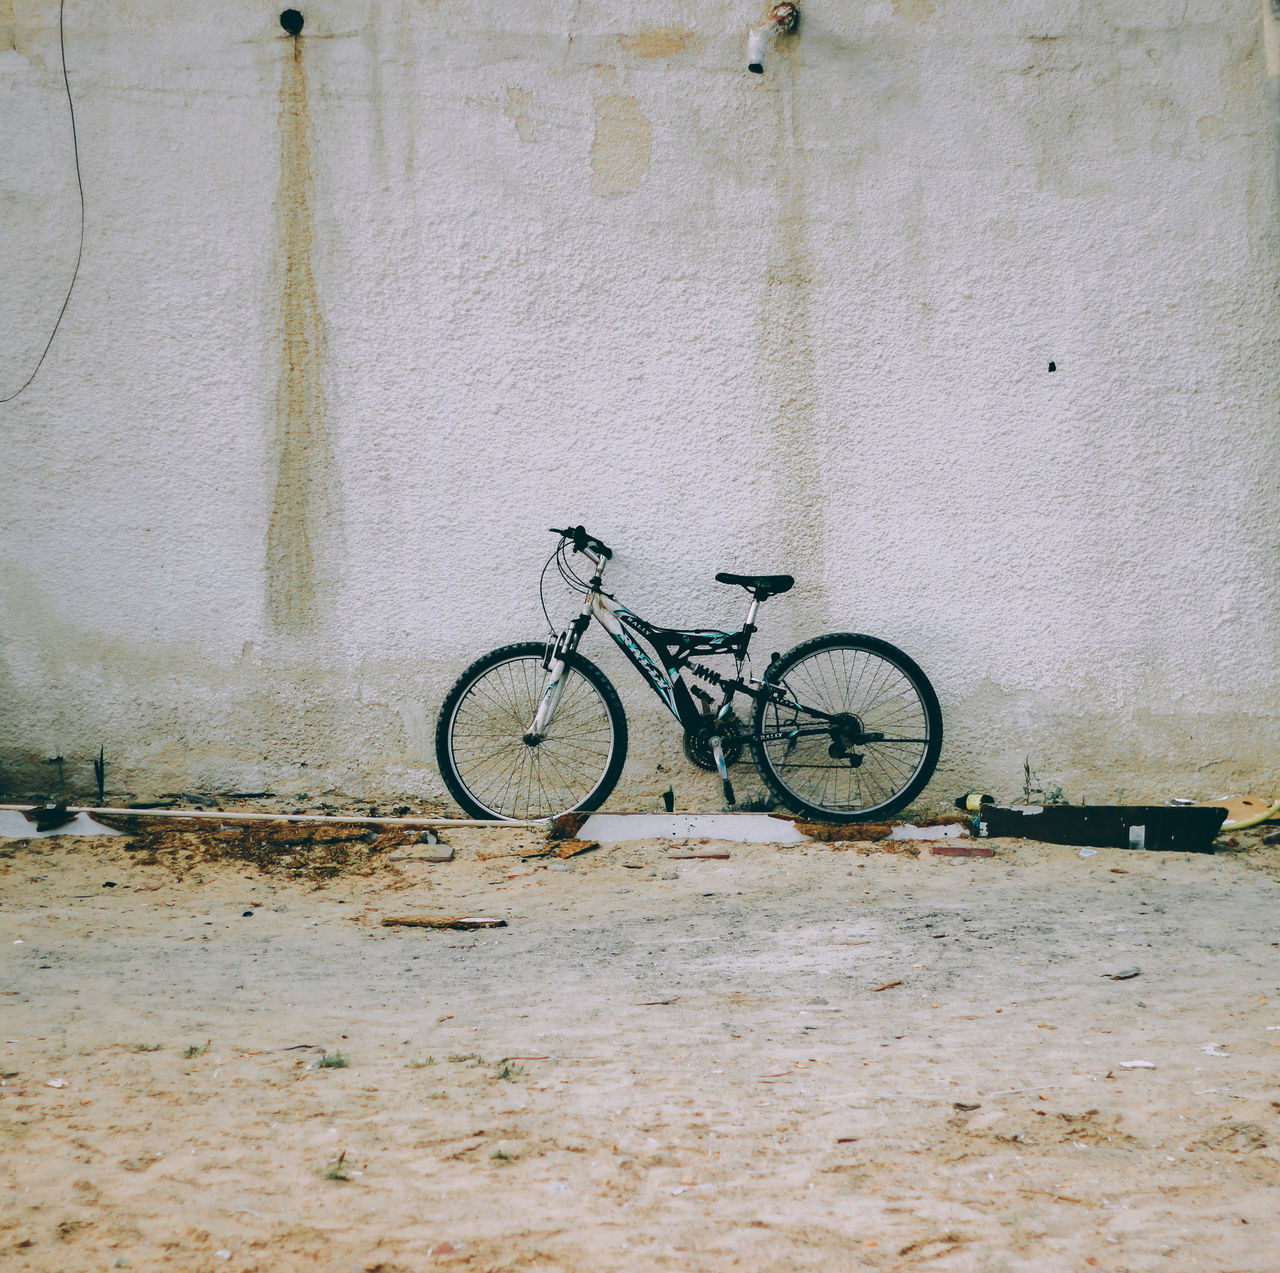 // 🚲 // AMPt AMPt_community Architecture Bicycle Bicycles Cycling Day Dubai EyeEm EyeEm Best Shots EyeEm Gallery Fragility Minimalism No People Outdoors Shootermag Silence Street Photography Streetphotography Tranquil Scene Tranquility Transportation UAE